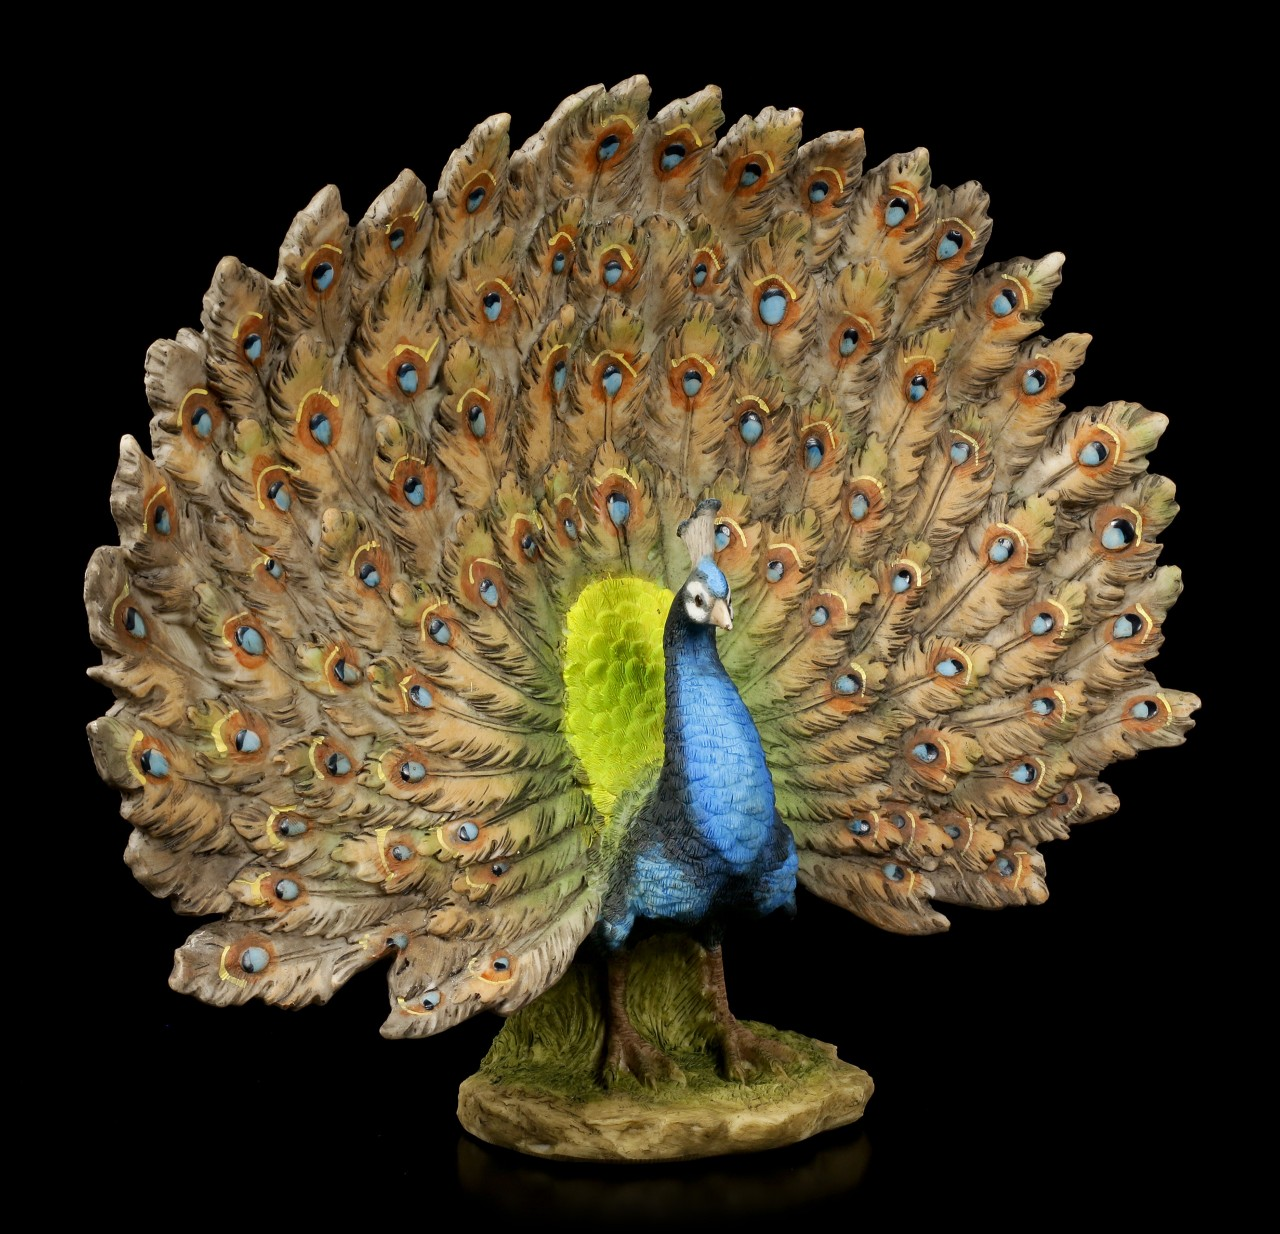 Peacock Figurine with Spreaded Feathers